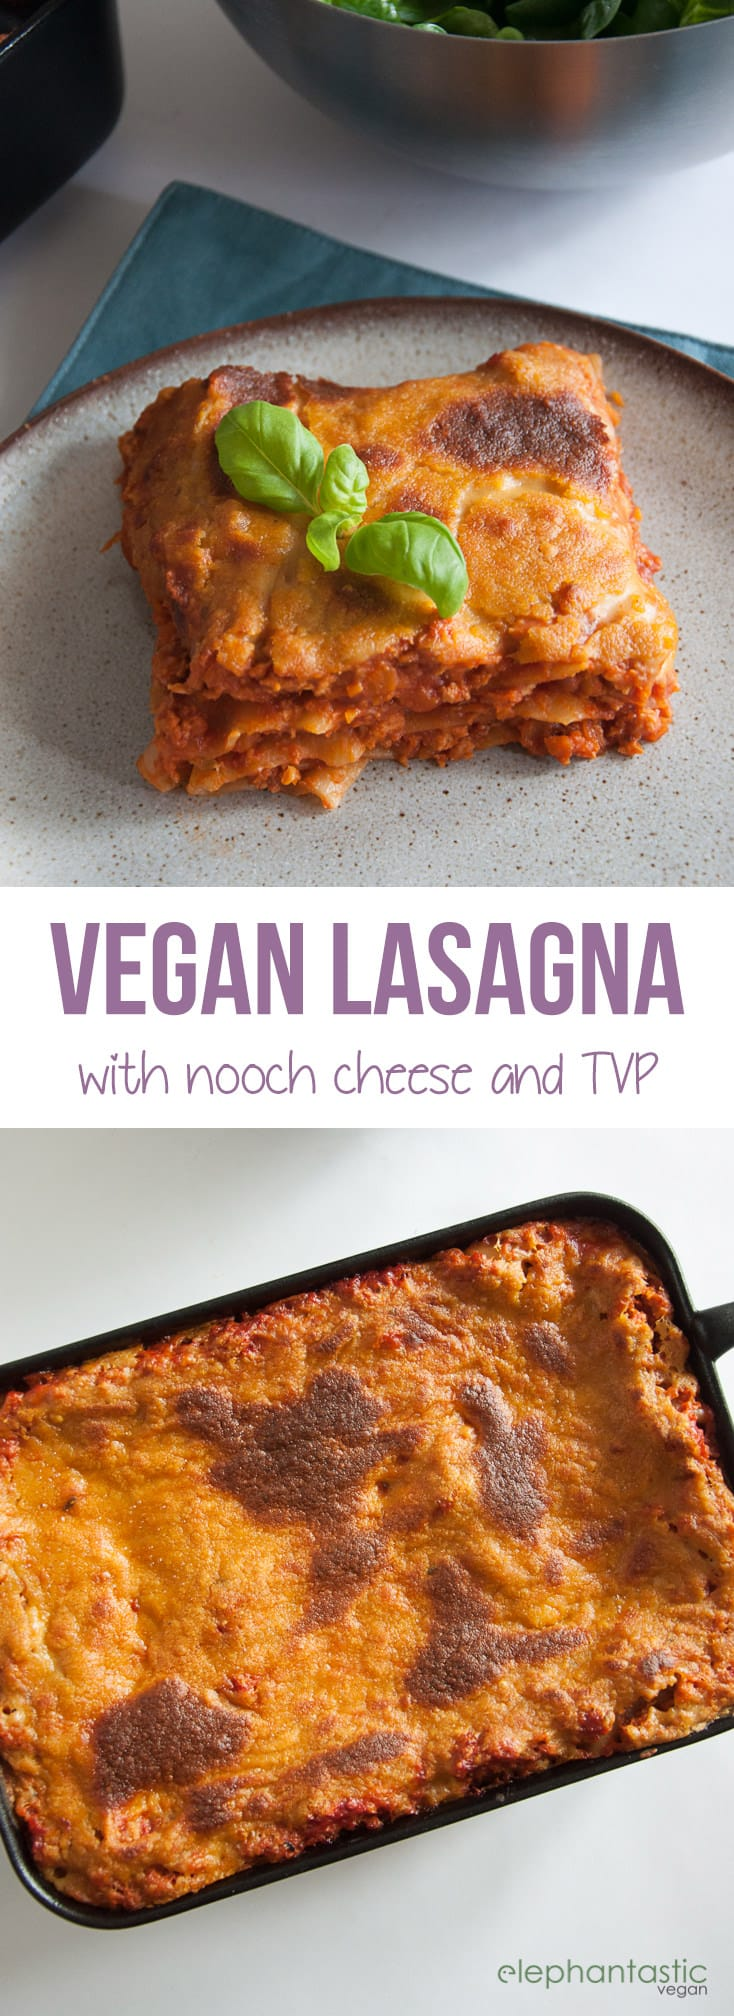 Vegan Lasagna with Nooch Cheese | ElephantasticVegan.com